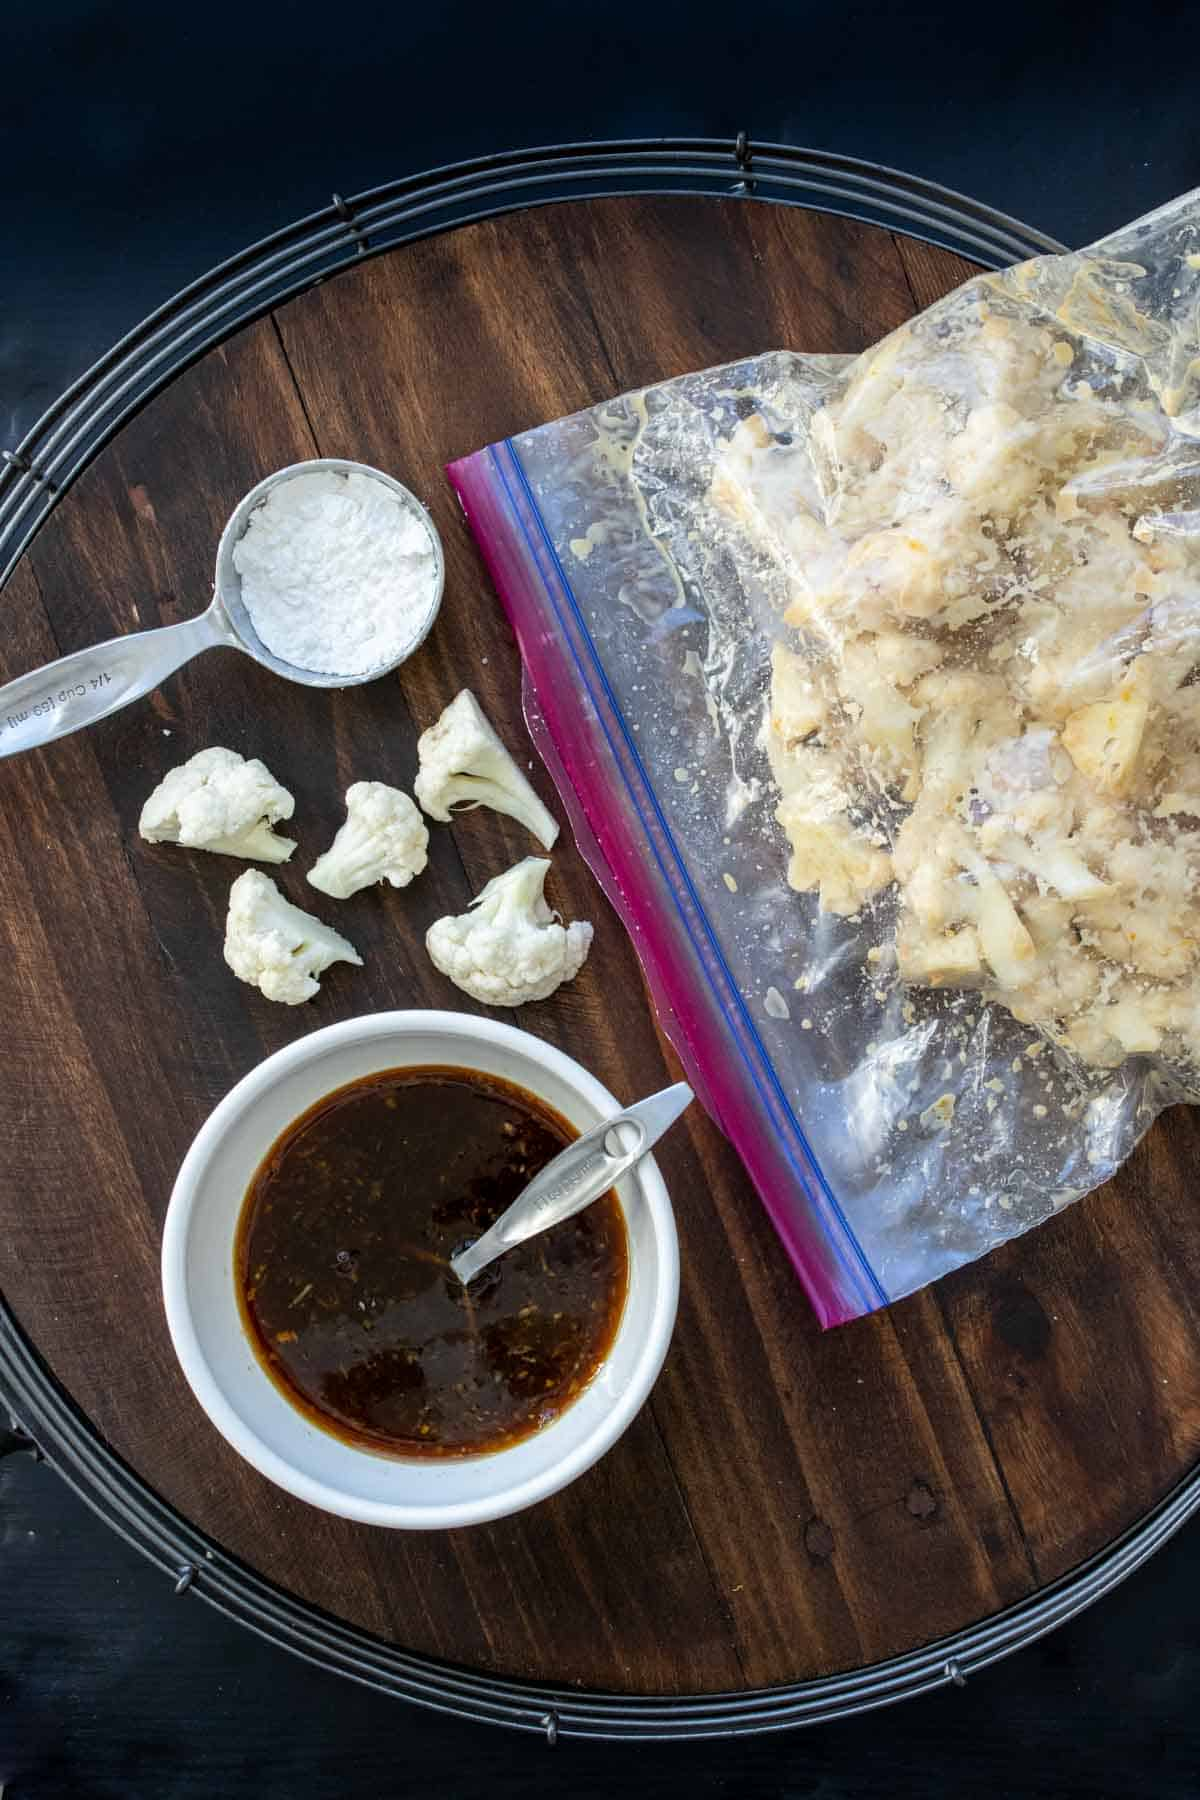 Plastic bag filled with cauliflower pieces next to bowl with brown sauce